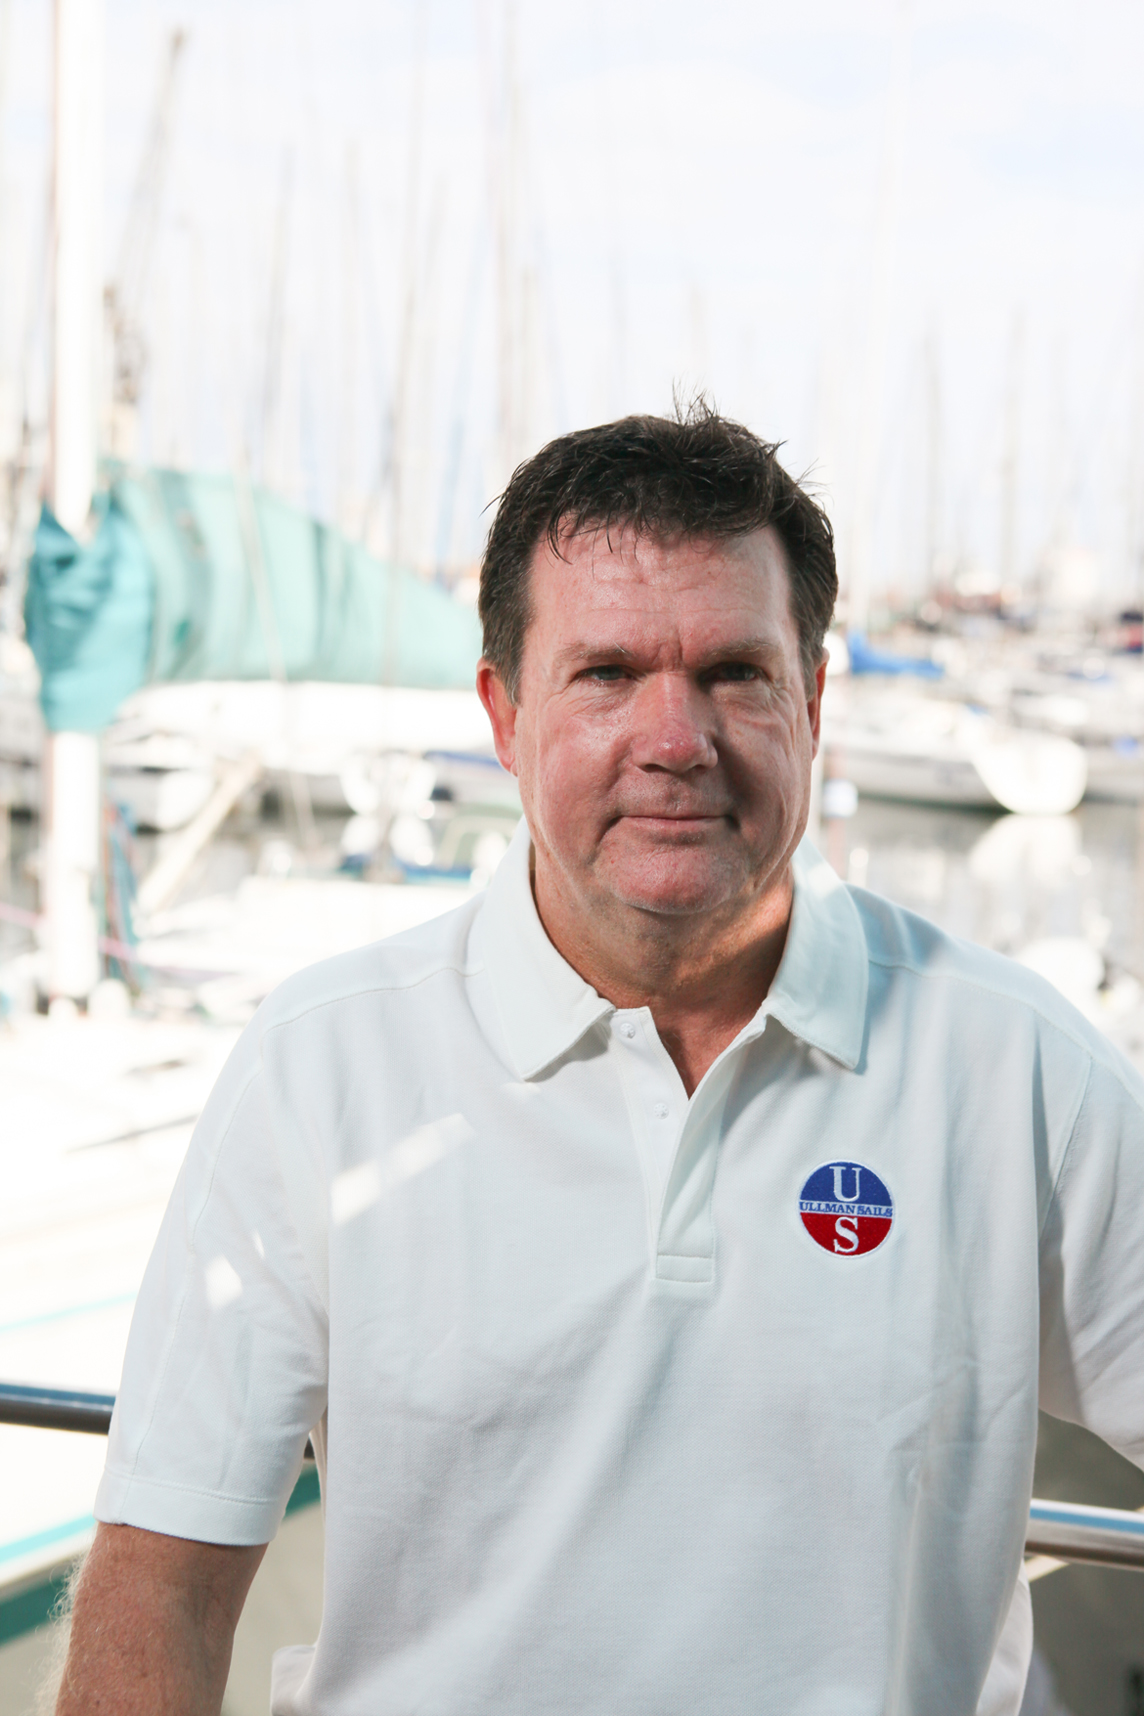 Greg Koski of Ullman Sails Cleveland